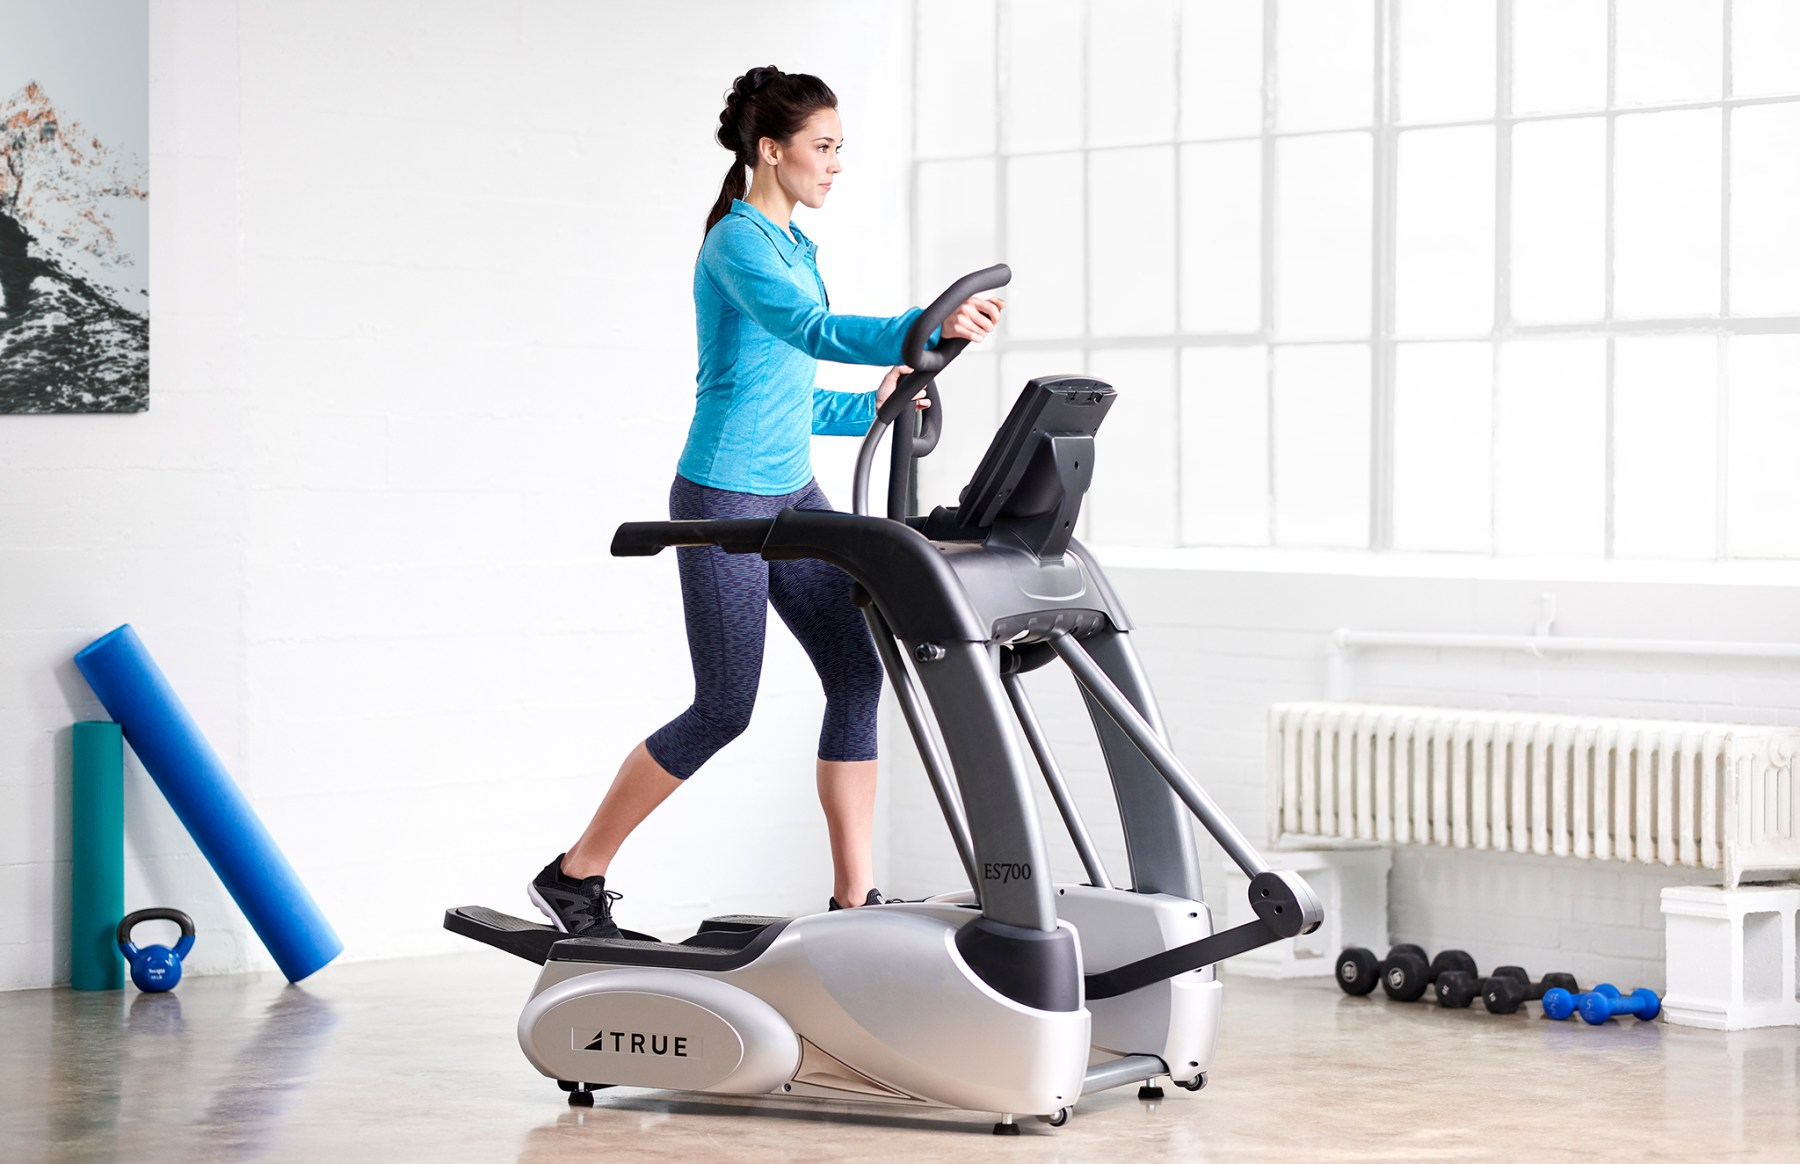 Ellipticals For Home from TRUE Fitness.